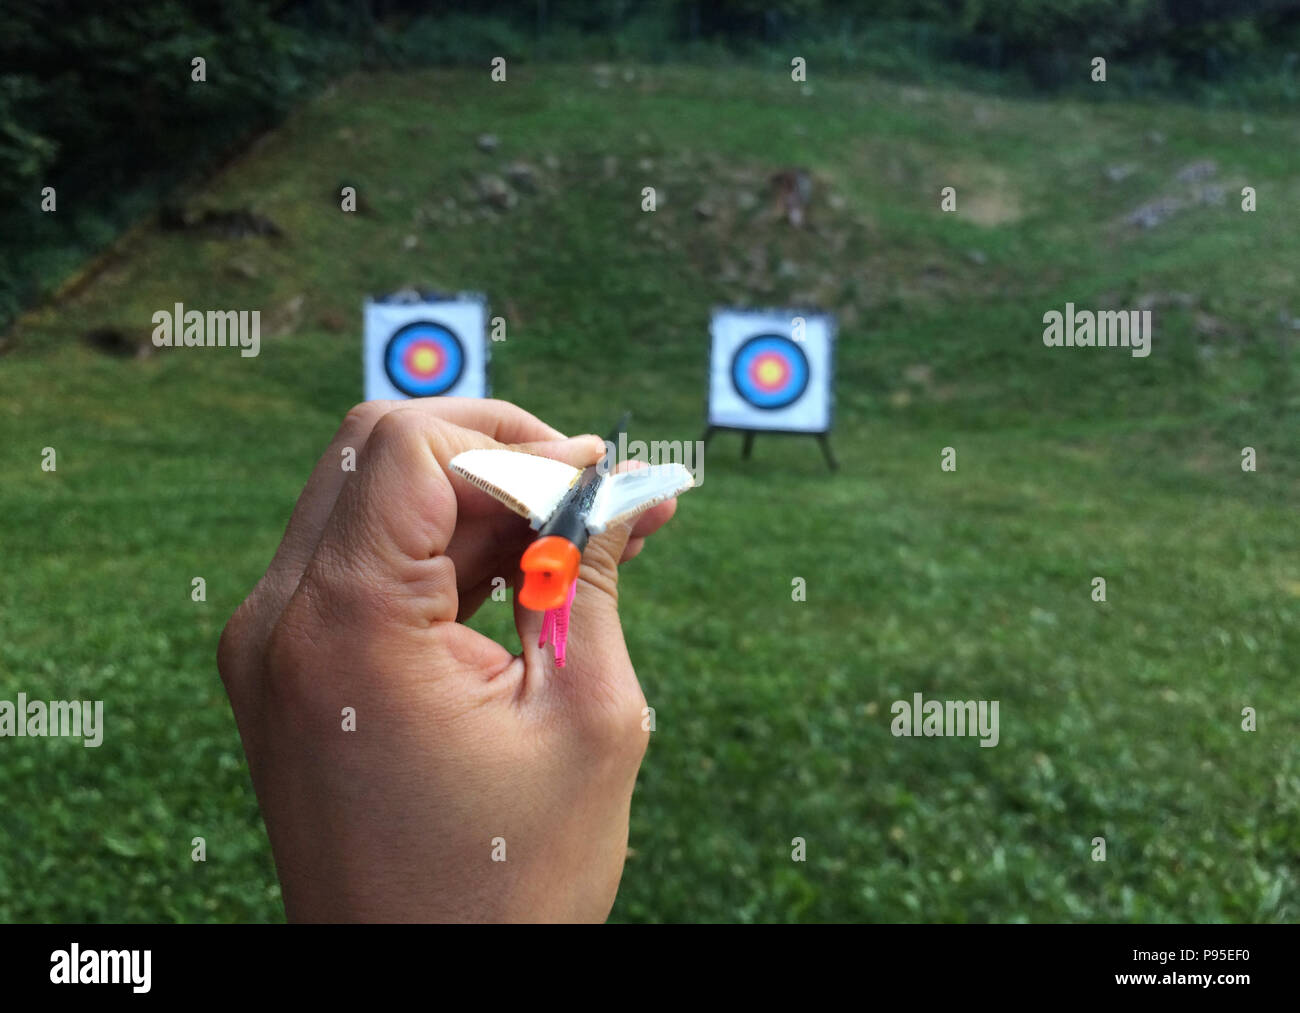 Hand holding an arrow with two targets in the background - Stock Image